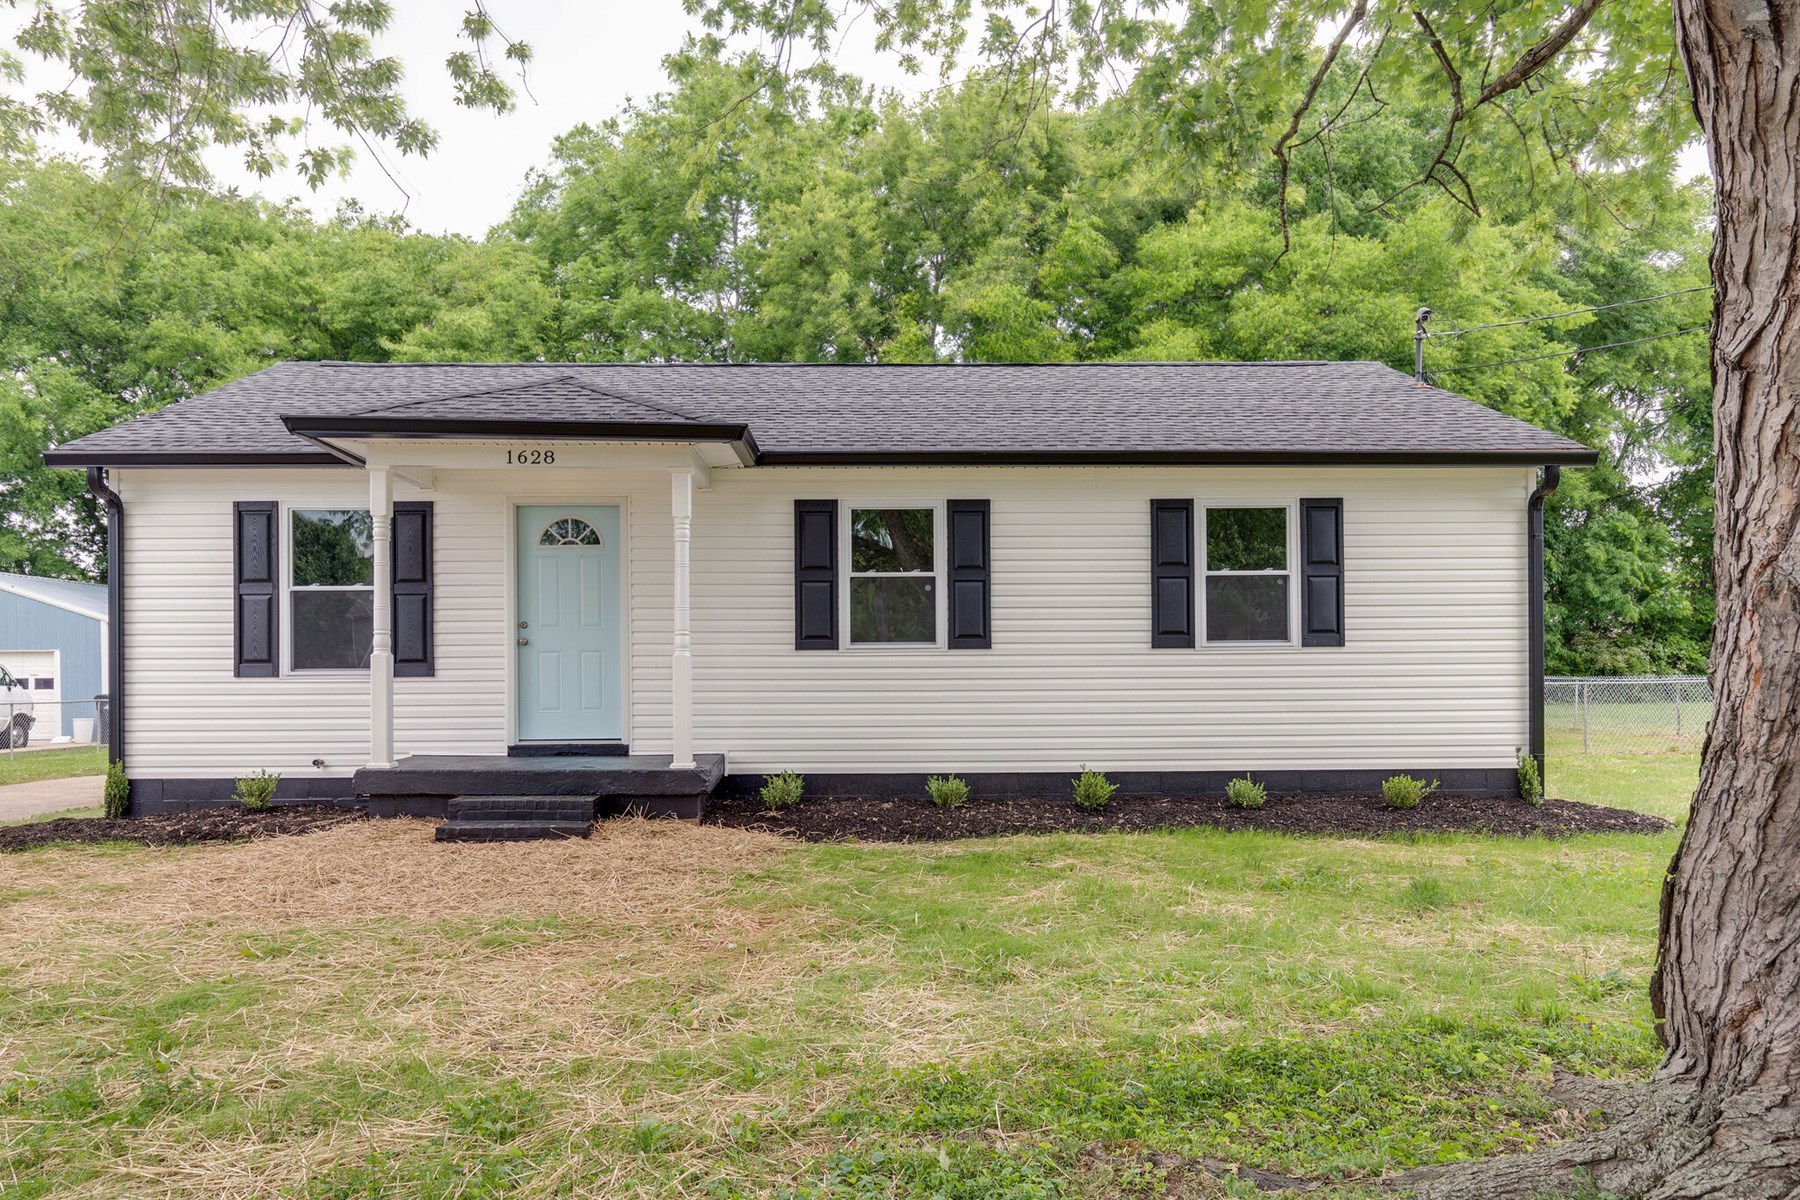 Renovated Home for Sale in Hickory Hollow Subdivision in TN